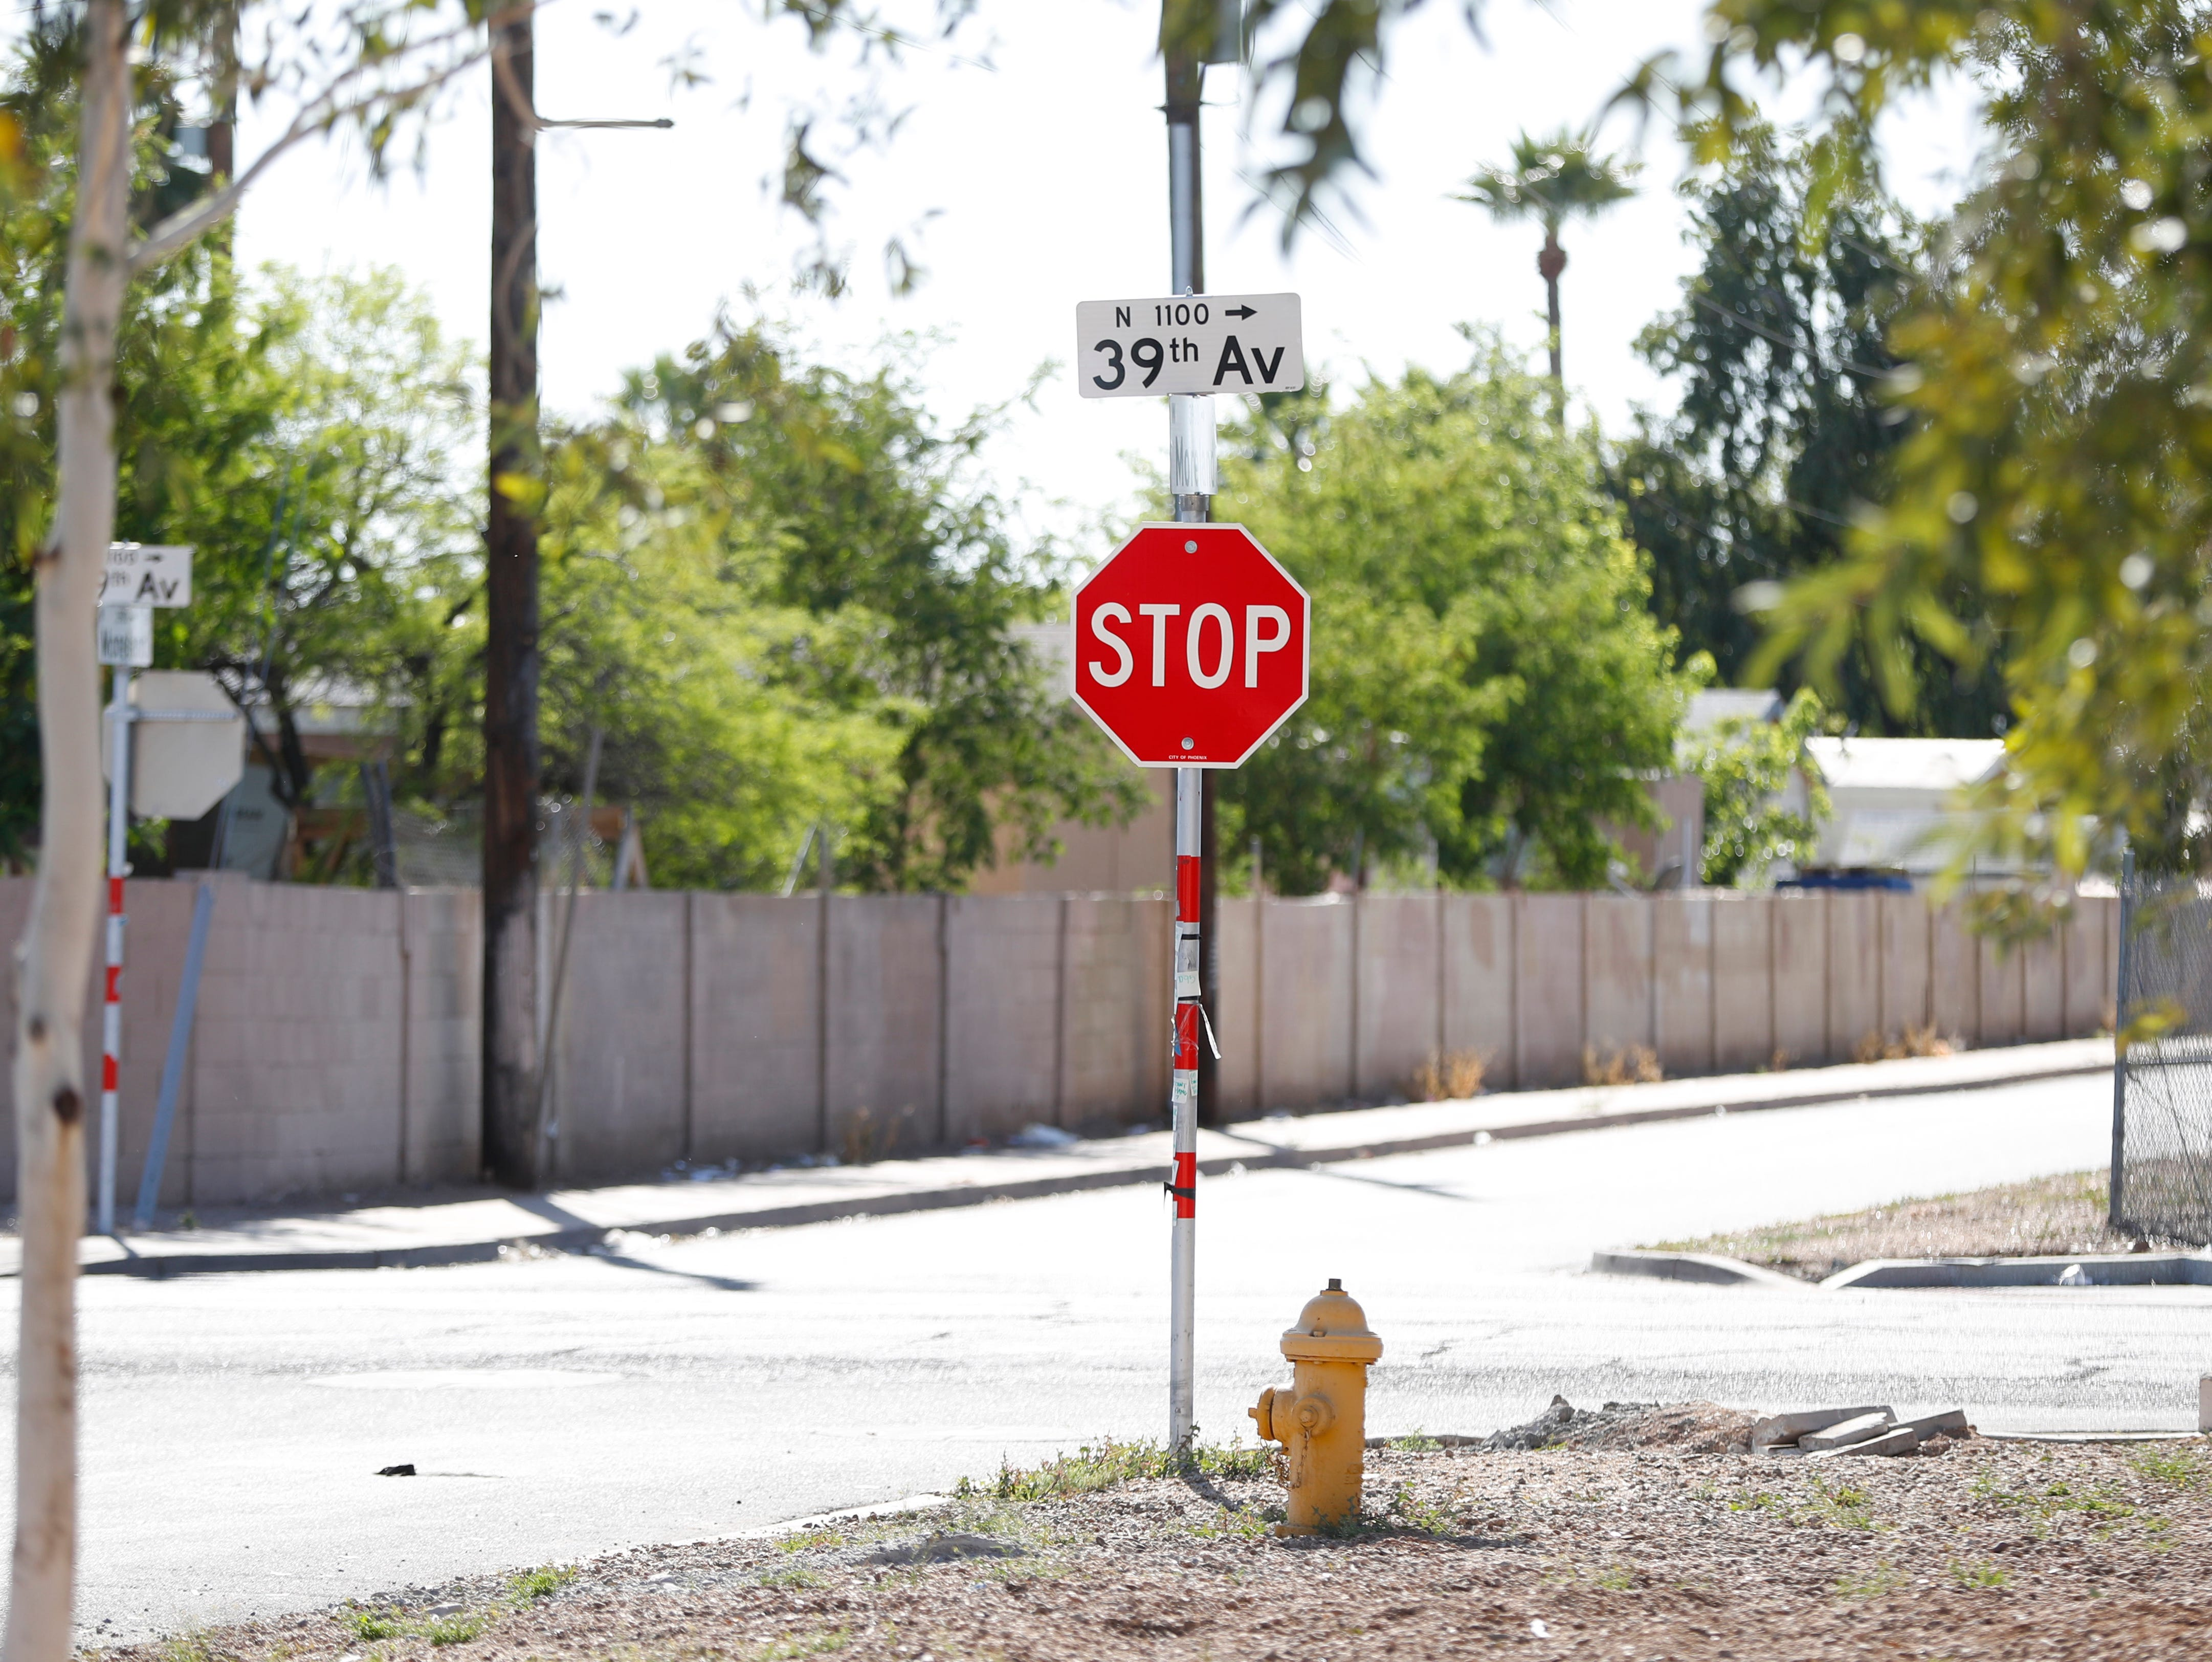 The street where a 10-year-old girl was shot and killed after an unexpected incident possibly involving road rage in Phoenix, Ariz., on April 3, 2019.